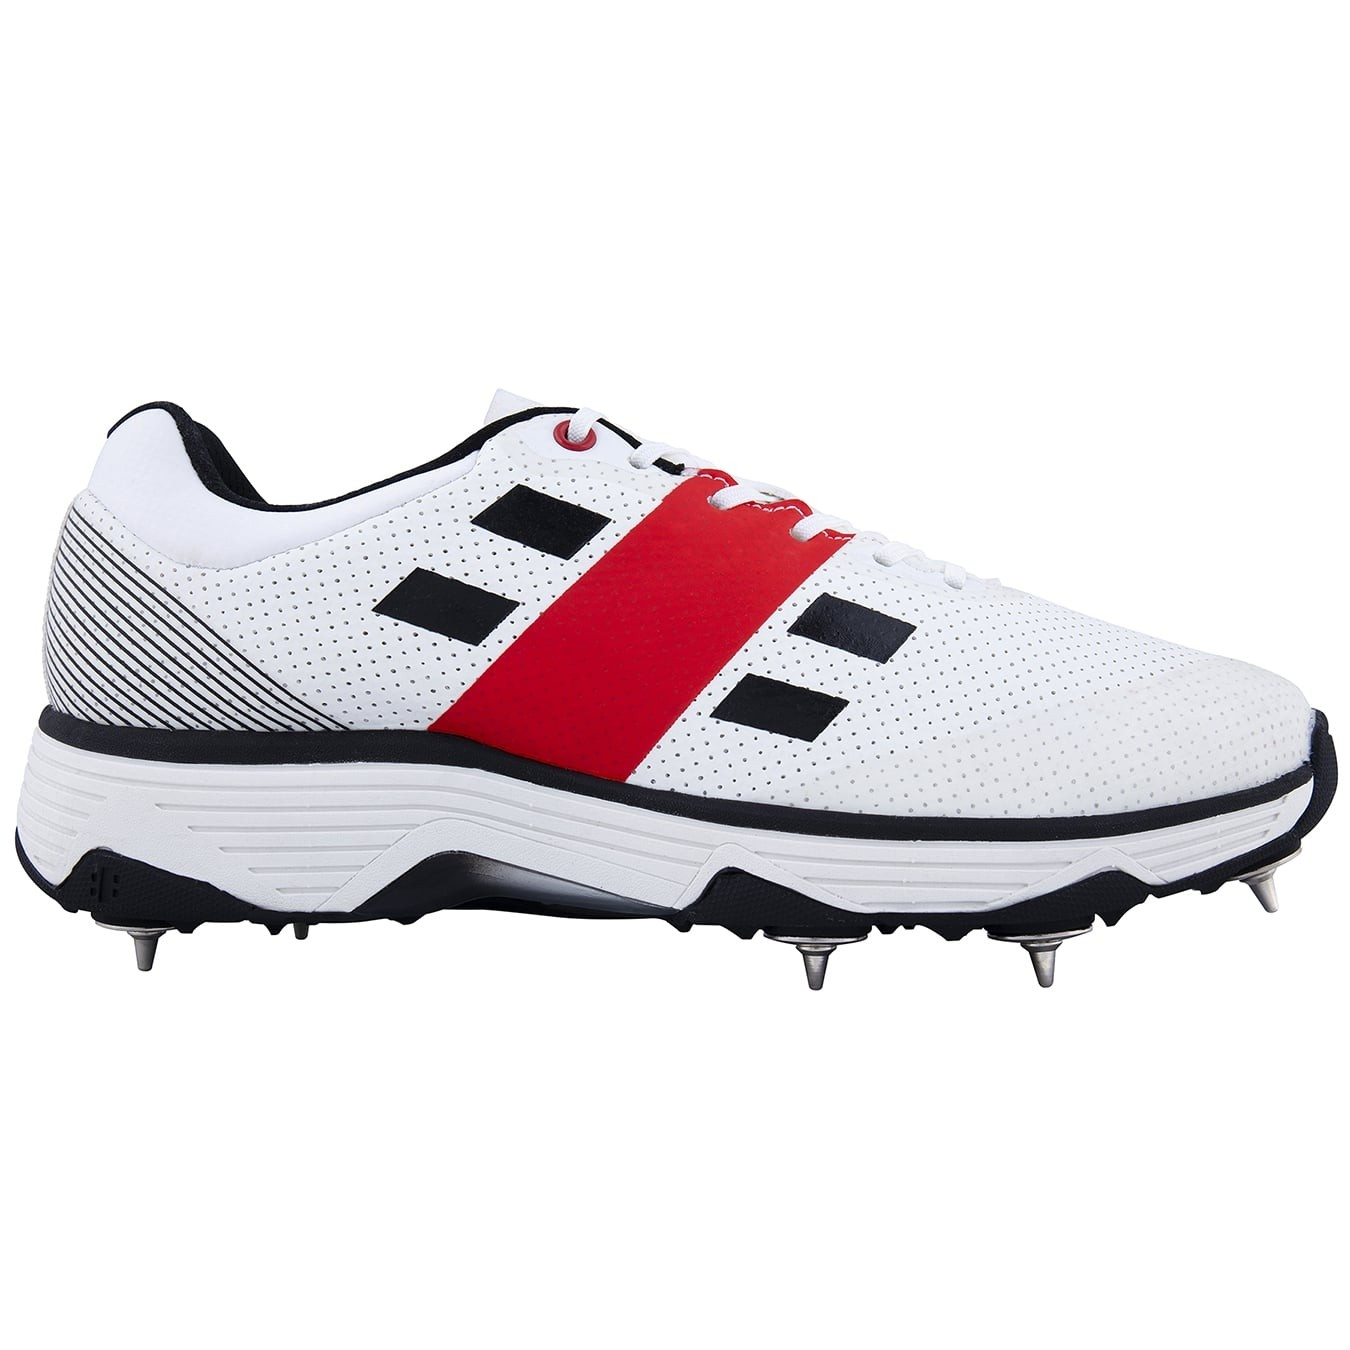 2021 Gray Nicolls Players Spike Cricket Shoes - Black